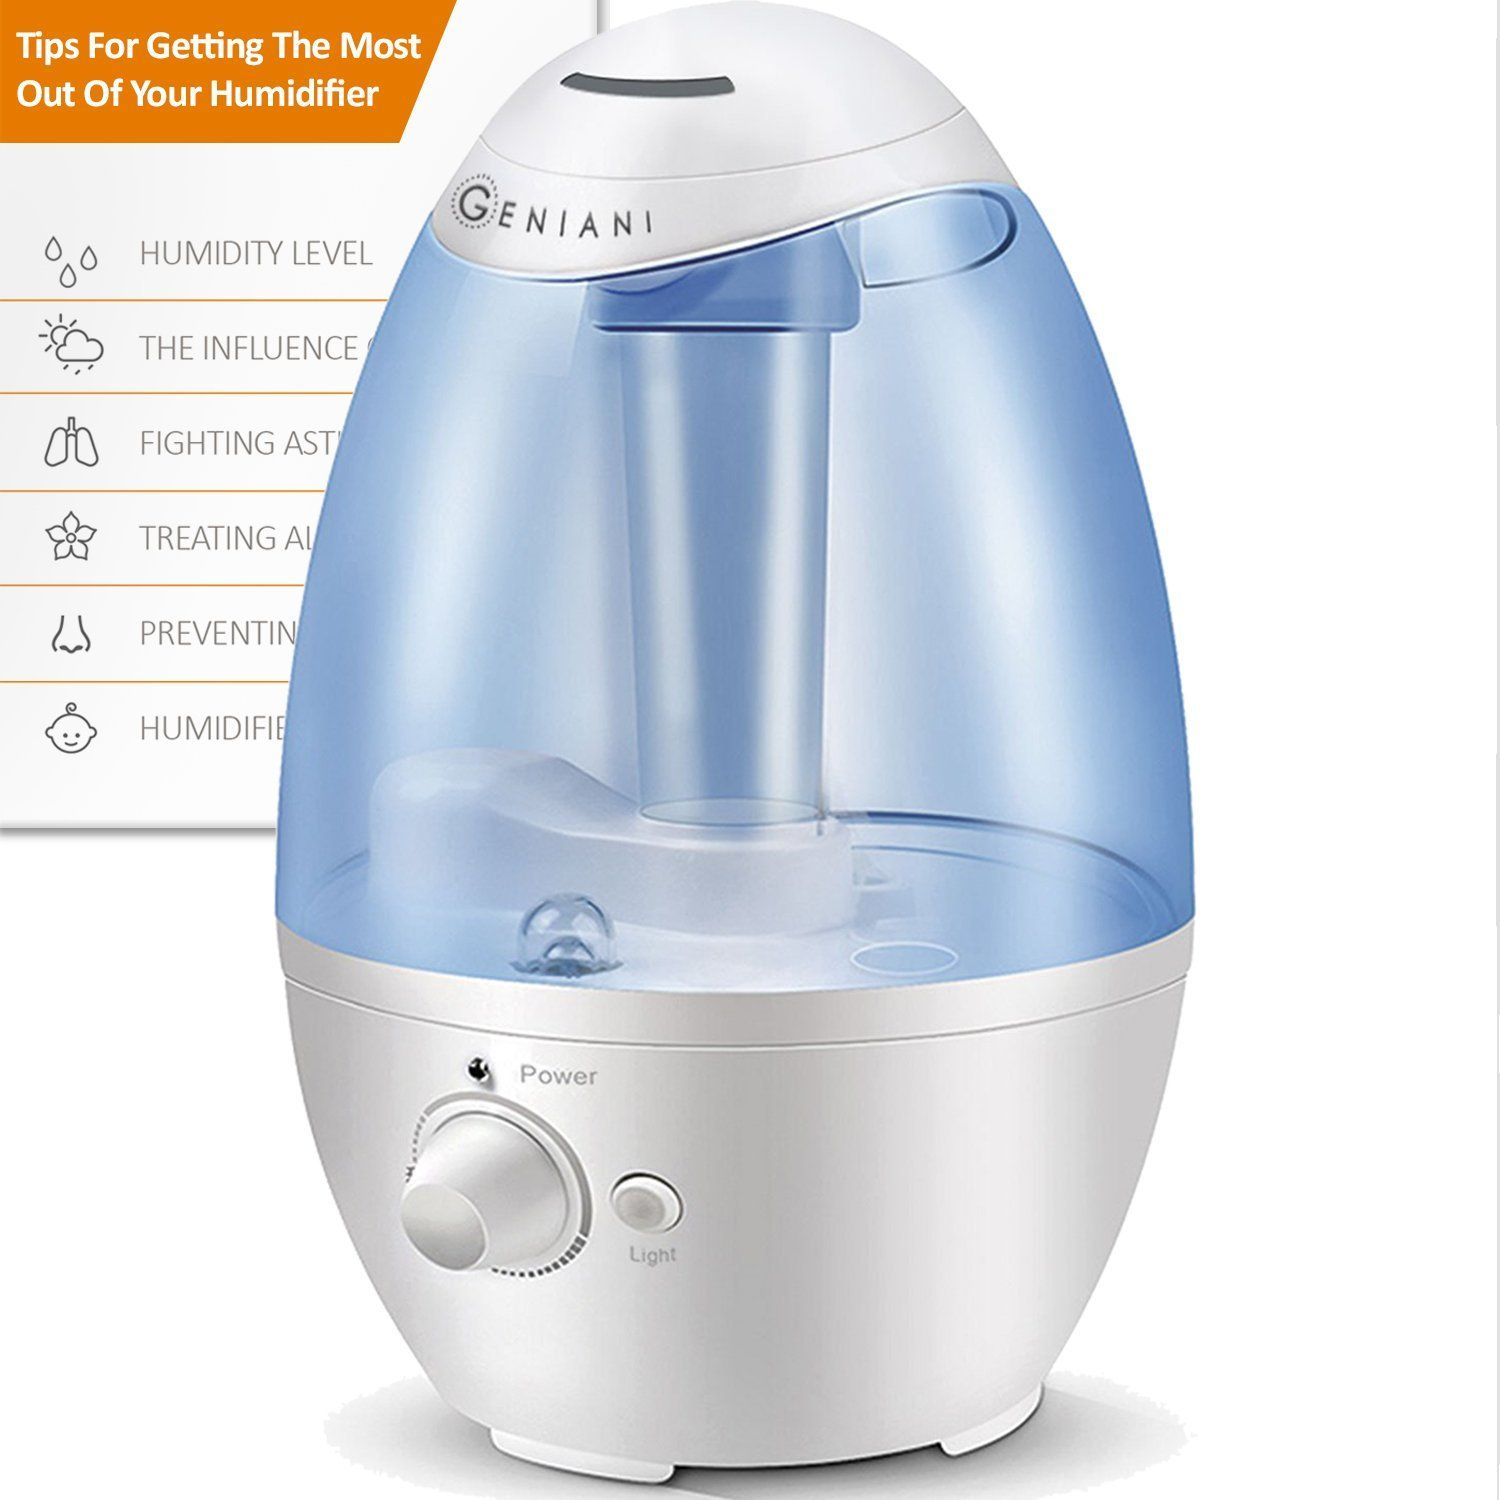 4. Top 10 Best Humidifiers Review Best humidifier